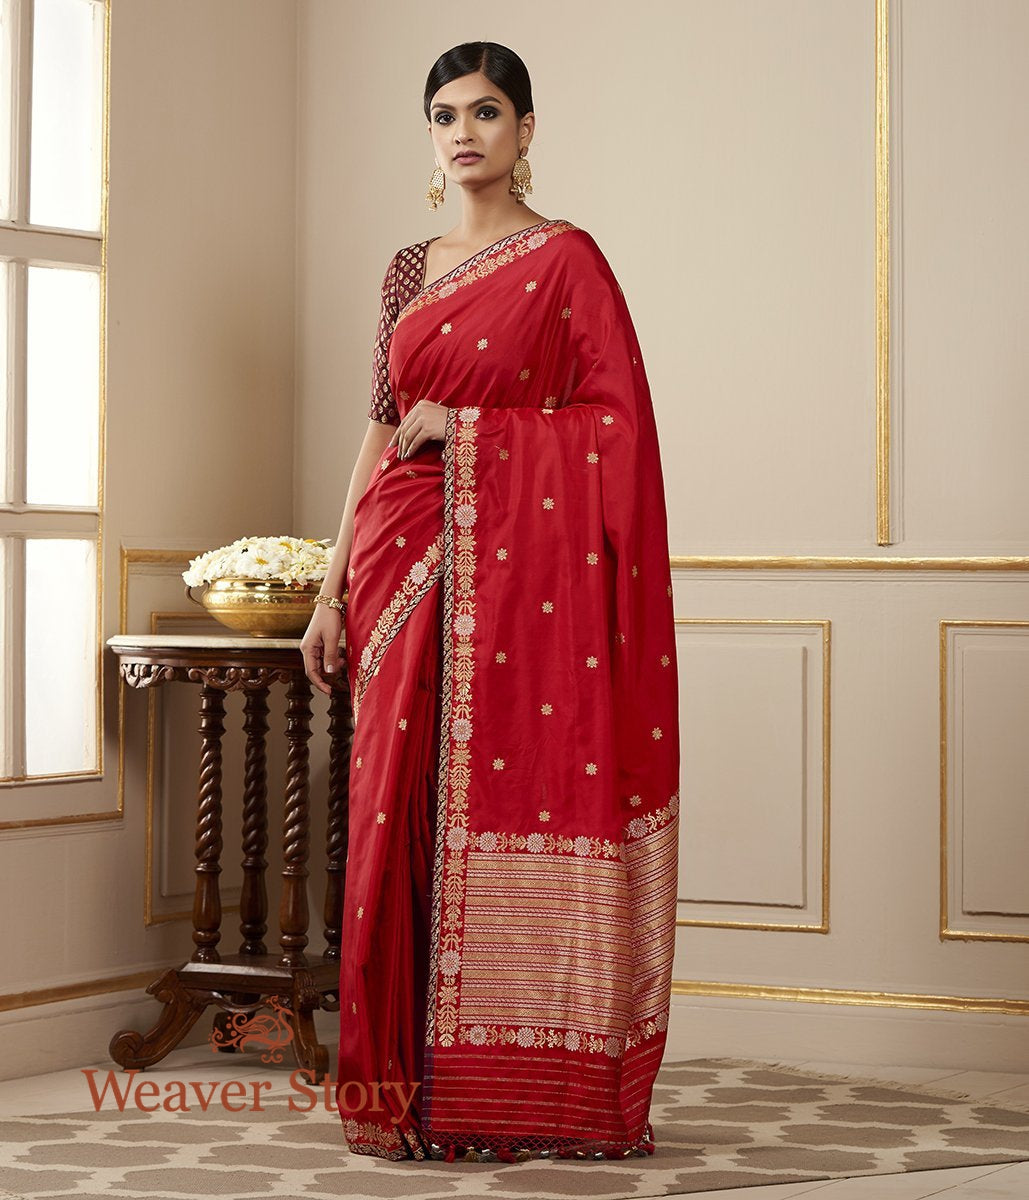 Handwoven Red Banarasi Saree with Kadhwa Booti and Delicate Floral Border